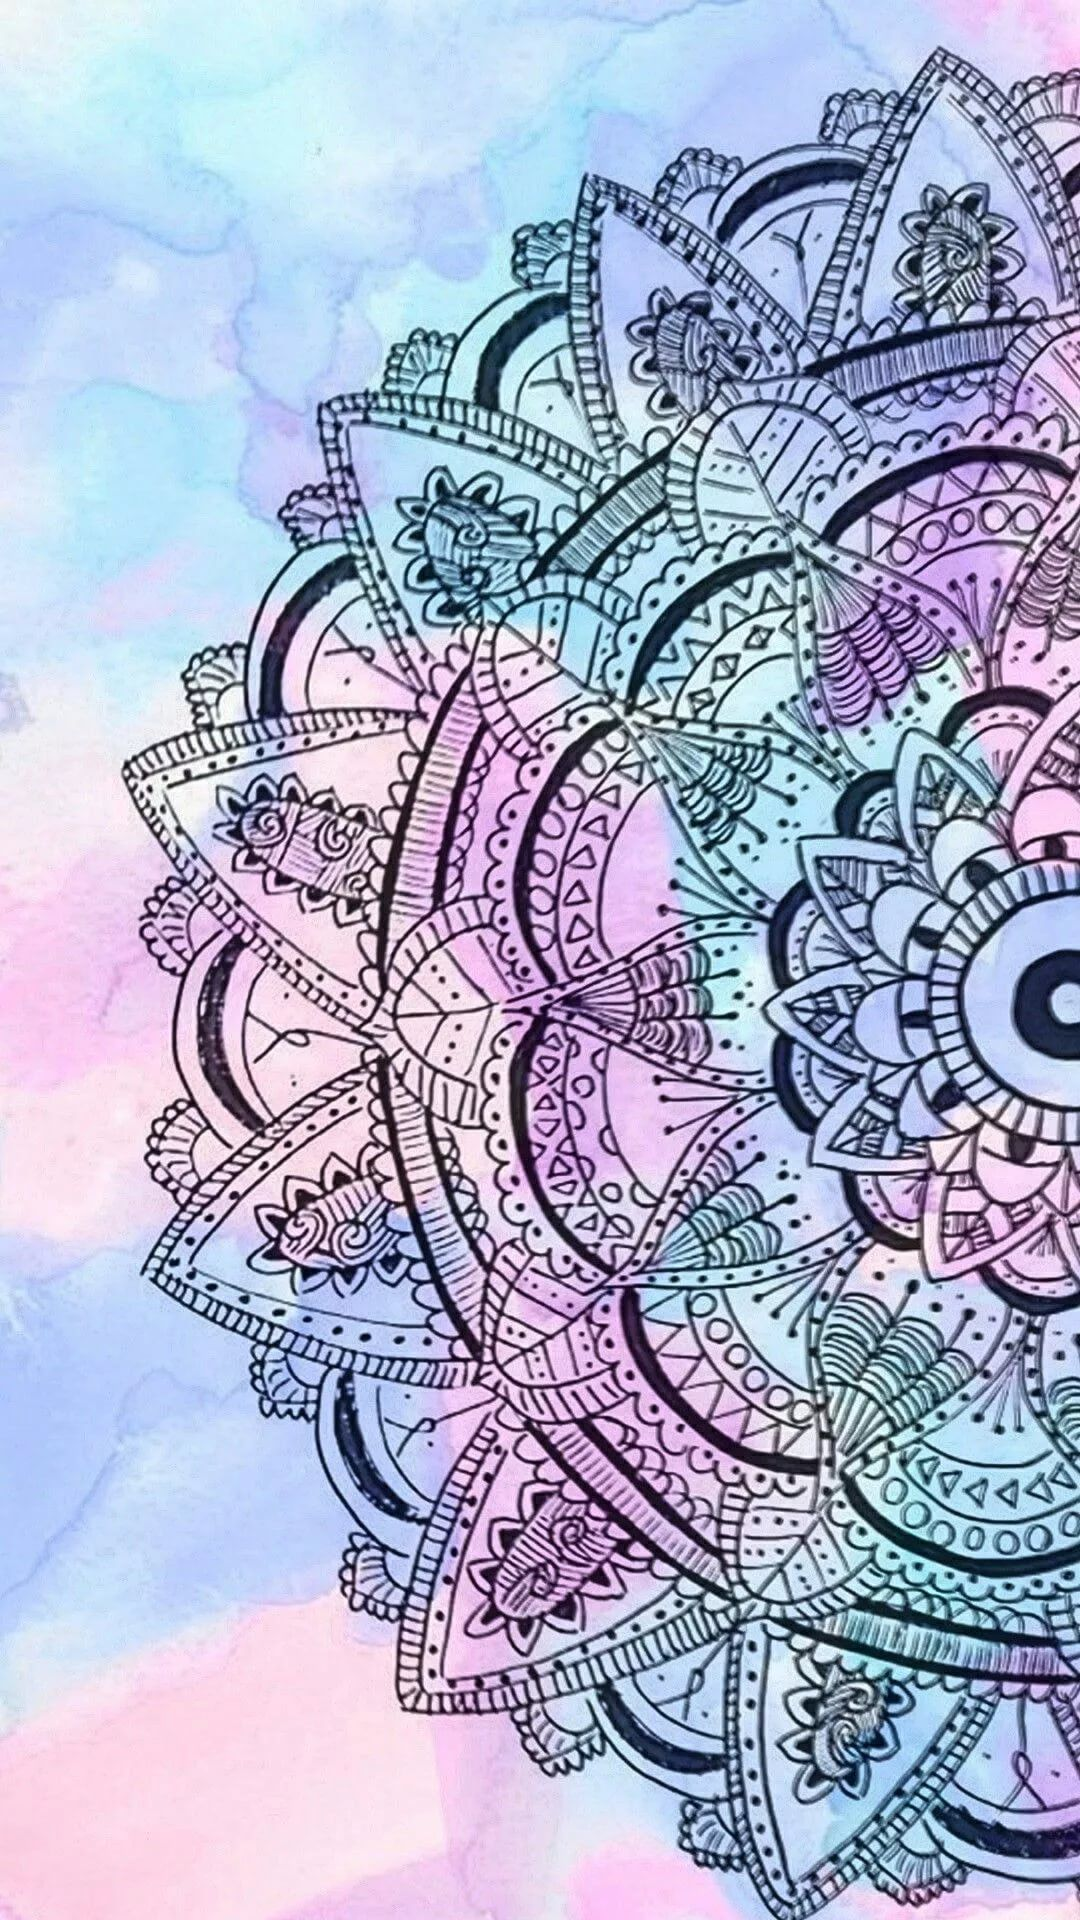 Om Iphone Wallpapers 25 Images Wallpaperboat